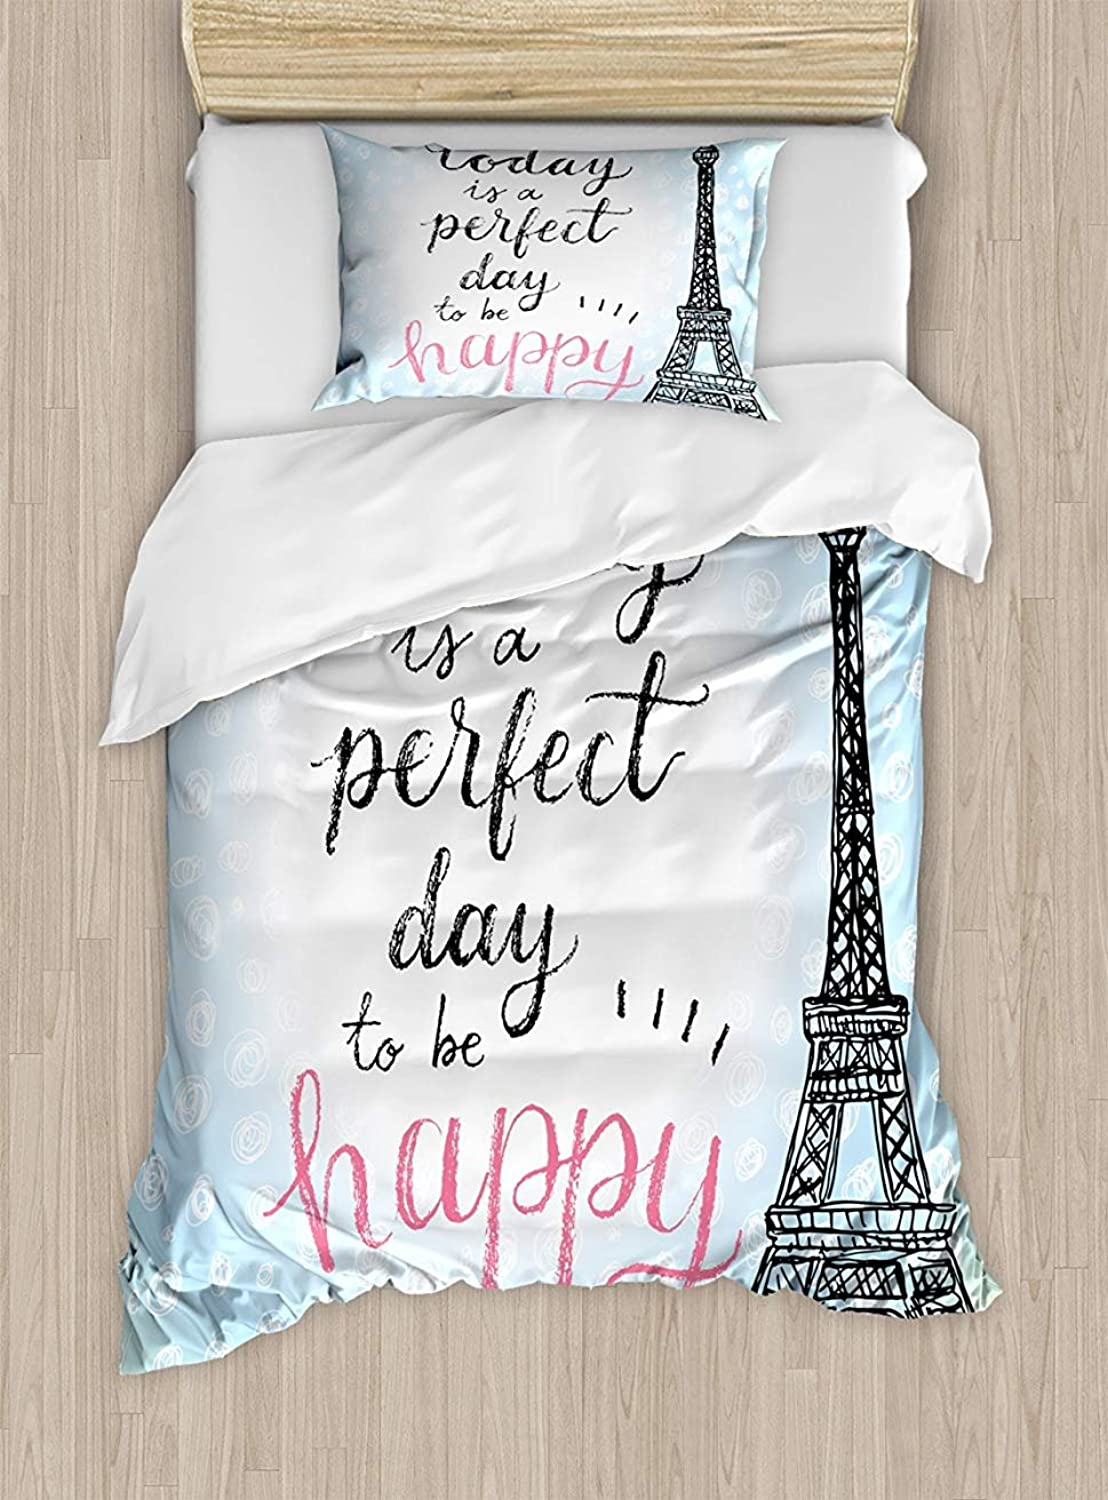 Z&L Home King Size Eiffel Tower Luxury Soft Duvet Cover Set, Perfect Day Eiffel Tower Polka Dot Handwriting Typography Sketch Paris Print, Decorative 4 Pieces Bedding Sets, bluee Black